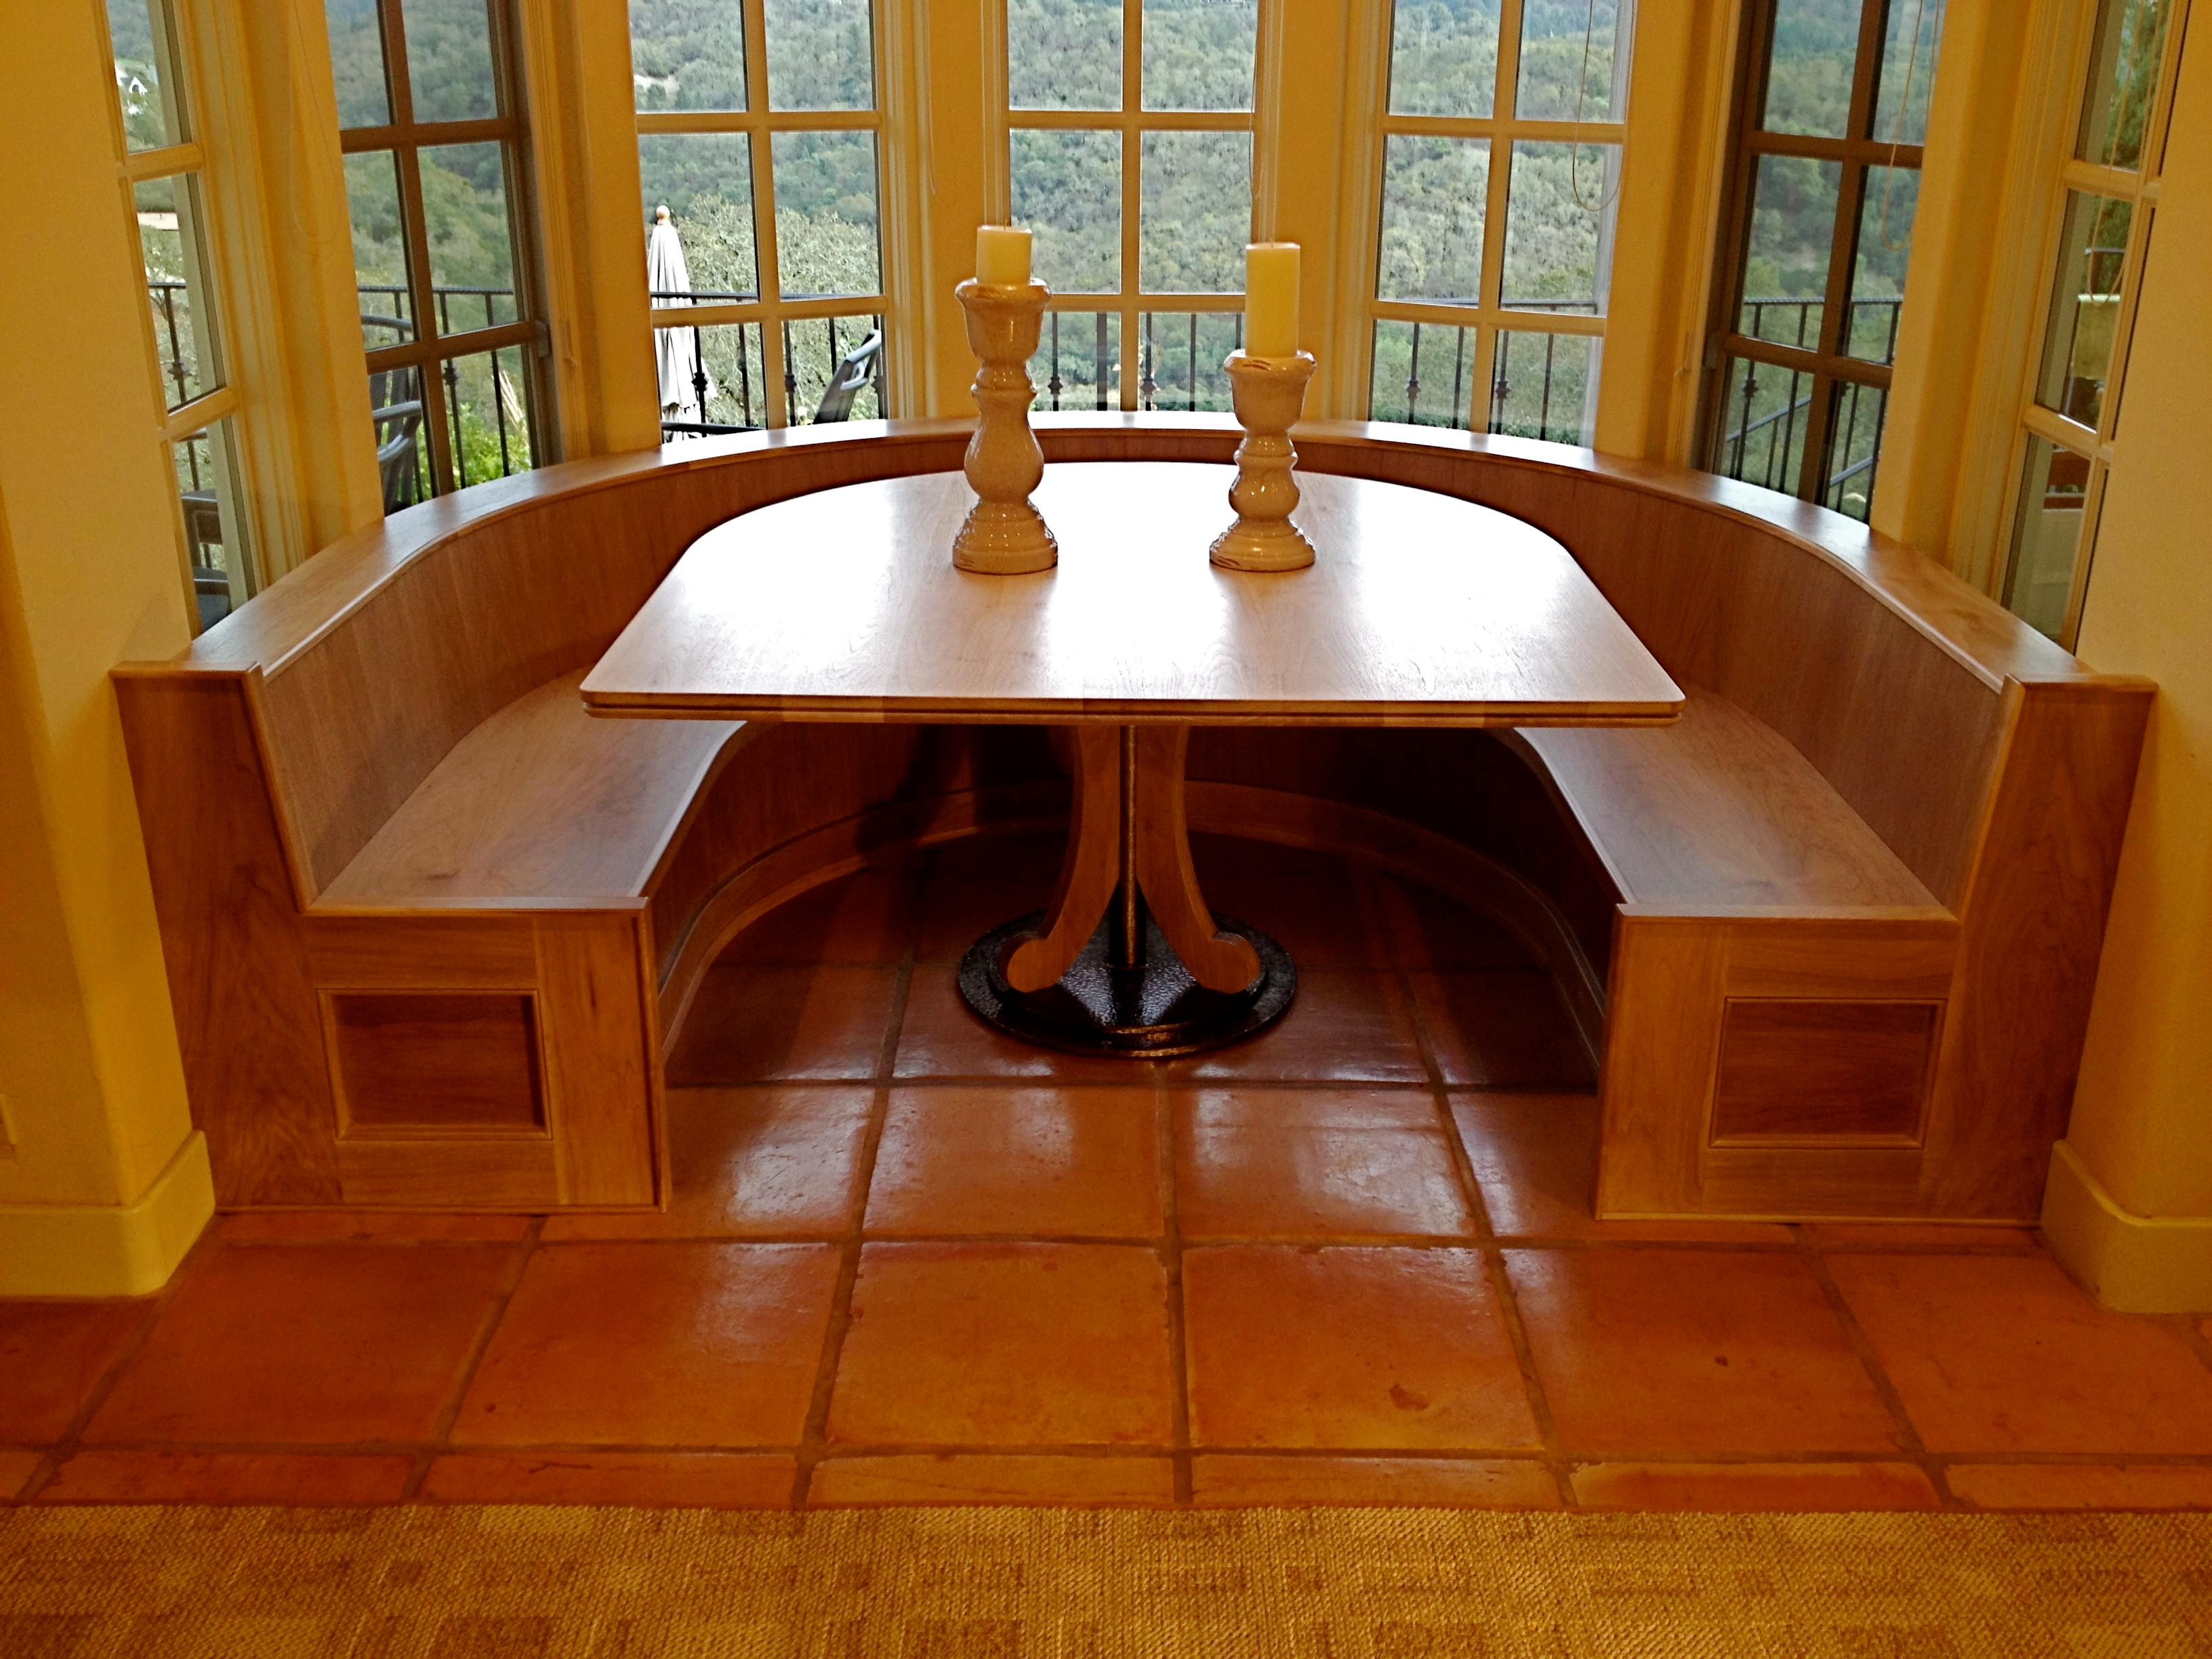 Custom built in banquette and table of bleached Walnut, designed and handcrafted by Philip Snyder of PS Woodworking elegantly utilizes maximum space, storage and comfort in this nook while adding an artistic showpiece to your home or business.